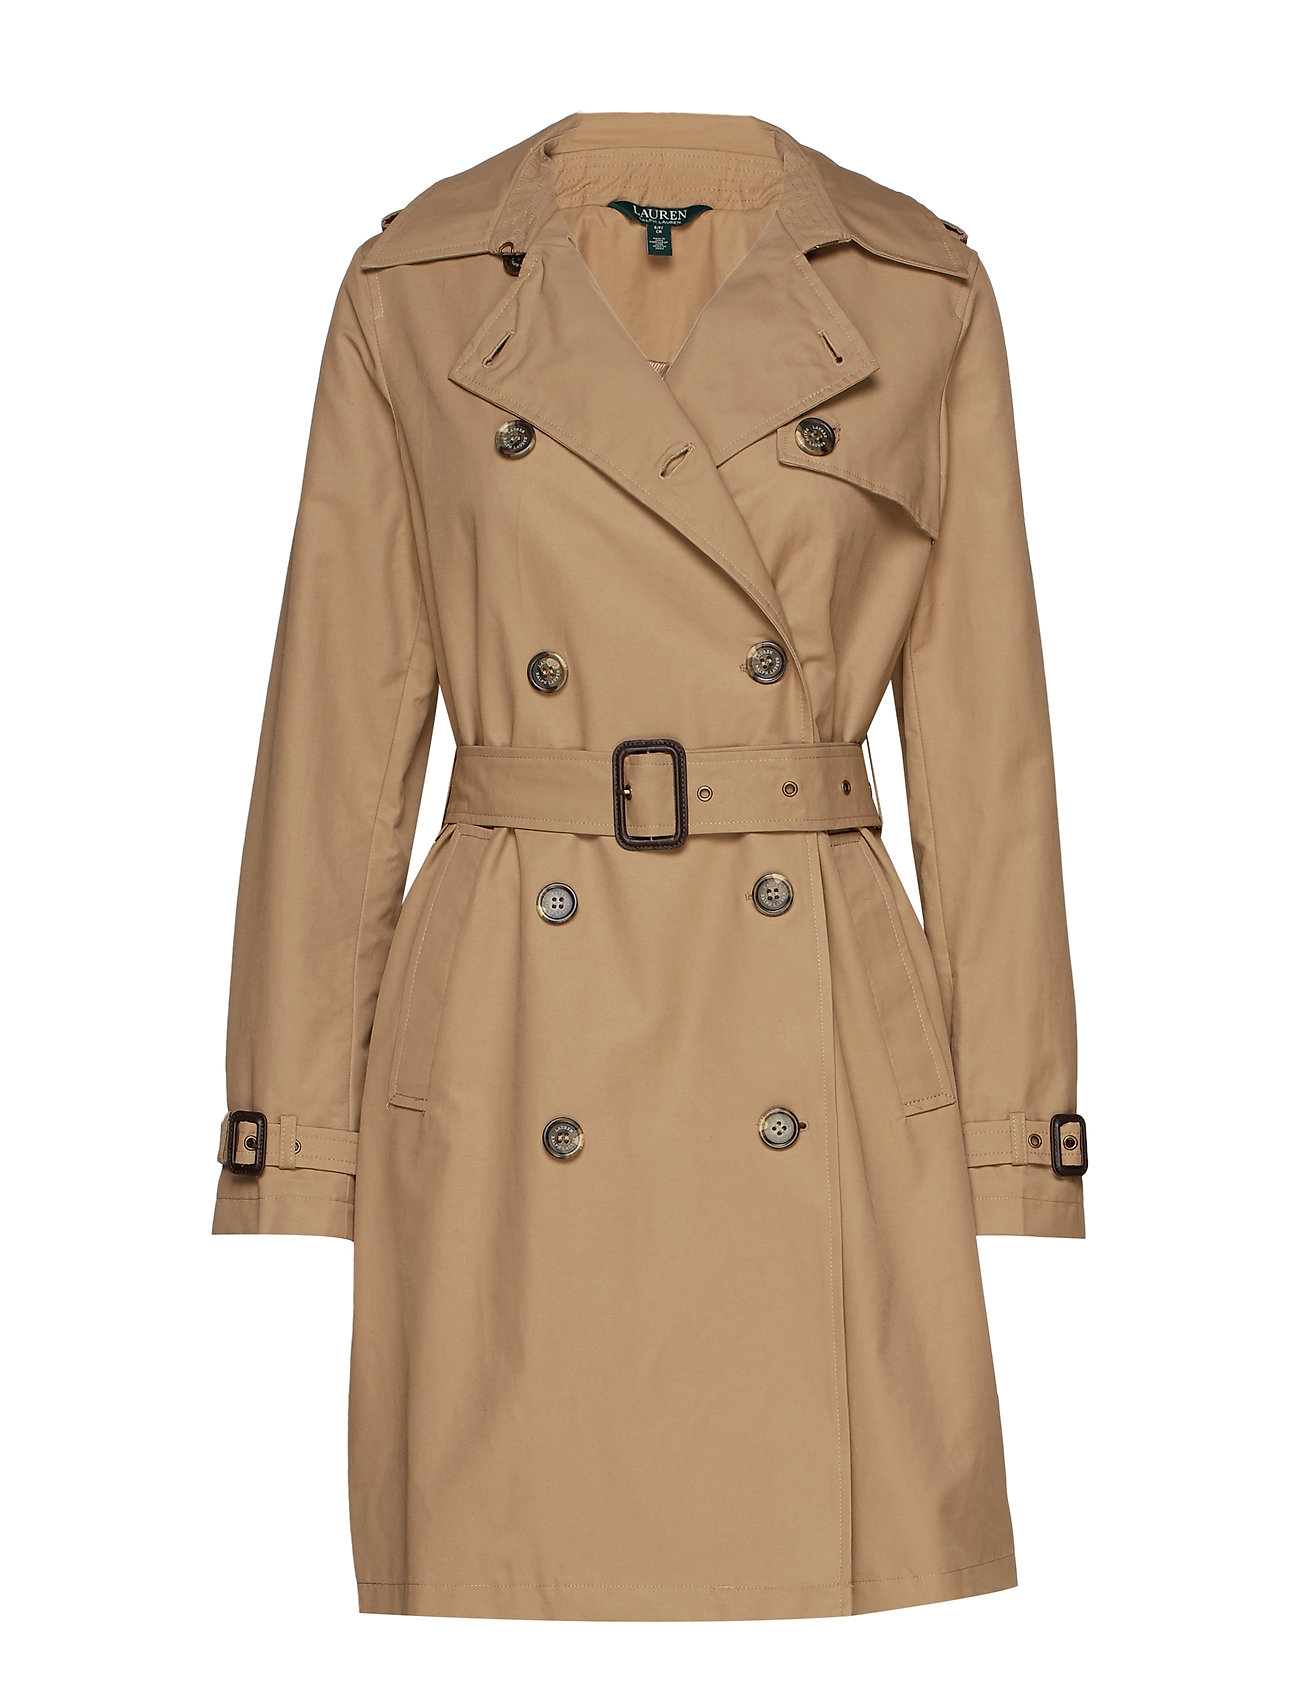 Lauren Ralph Lauren Cotton-Blend Trench Coat - SAND